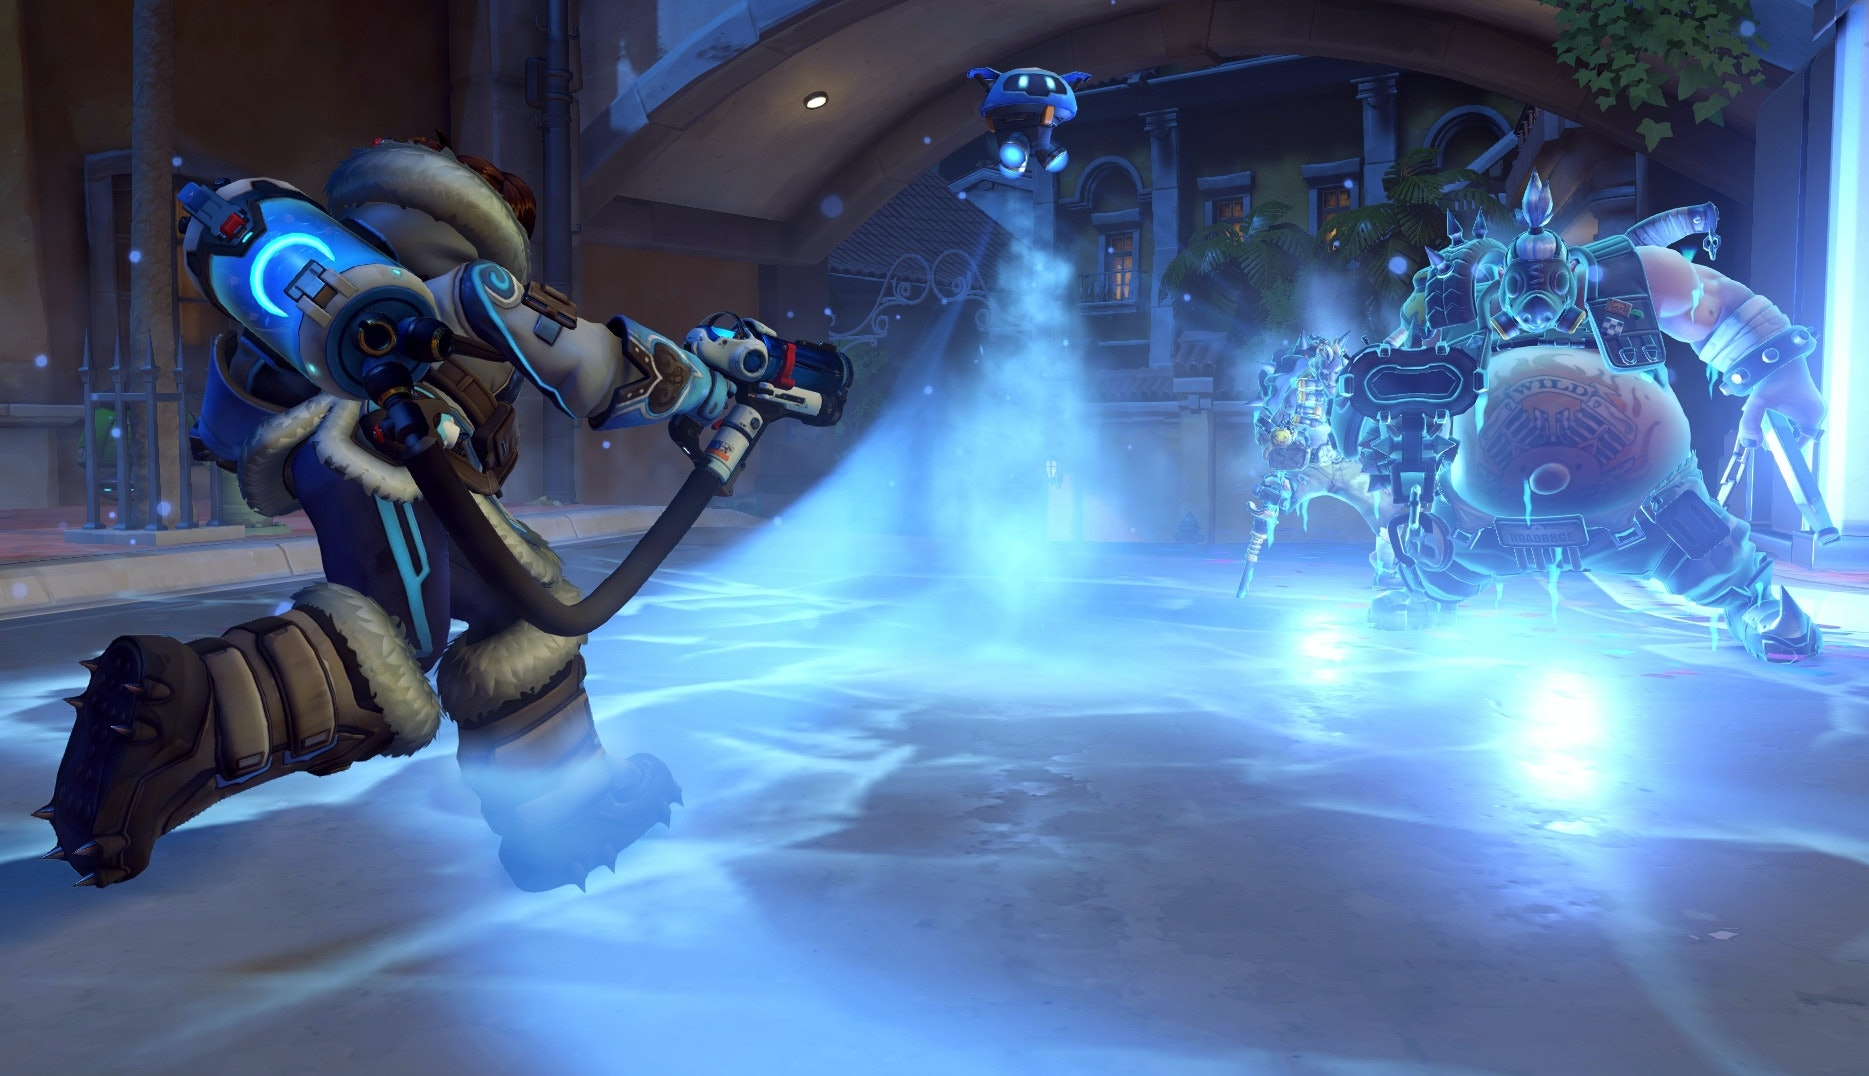 Overwatch' Sombra guide: Tips, tricks, what can be hacked